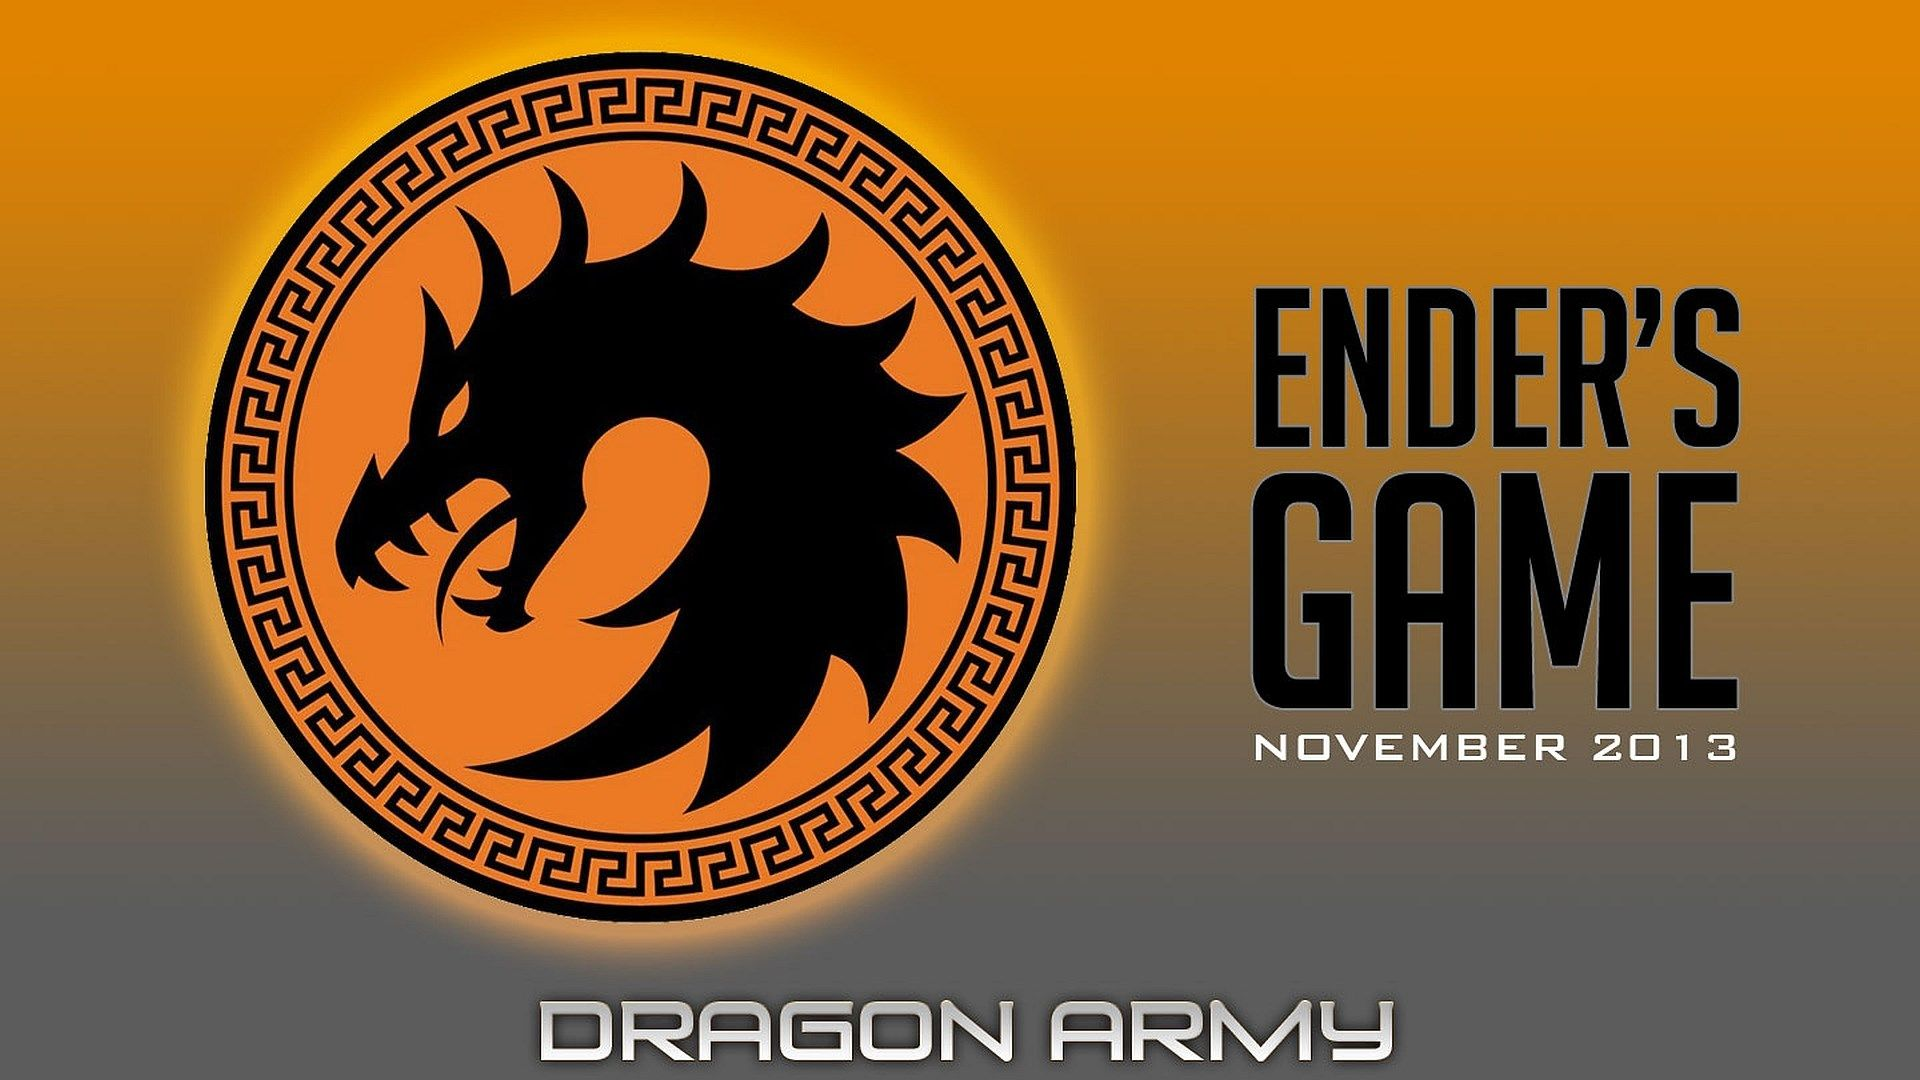 1920x1080 px Free download enders game wallpaper by Elvin